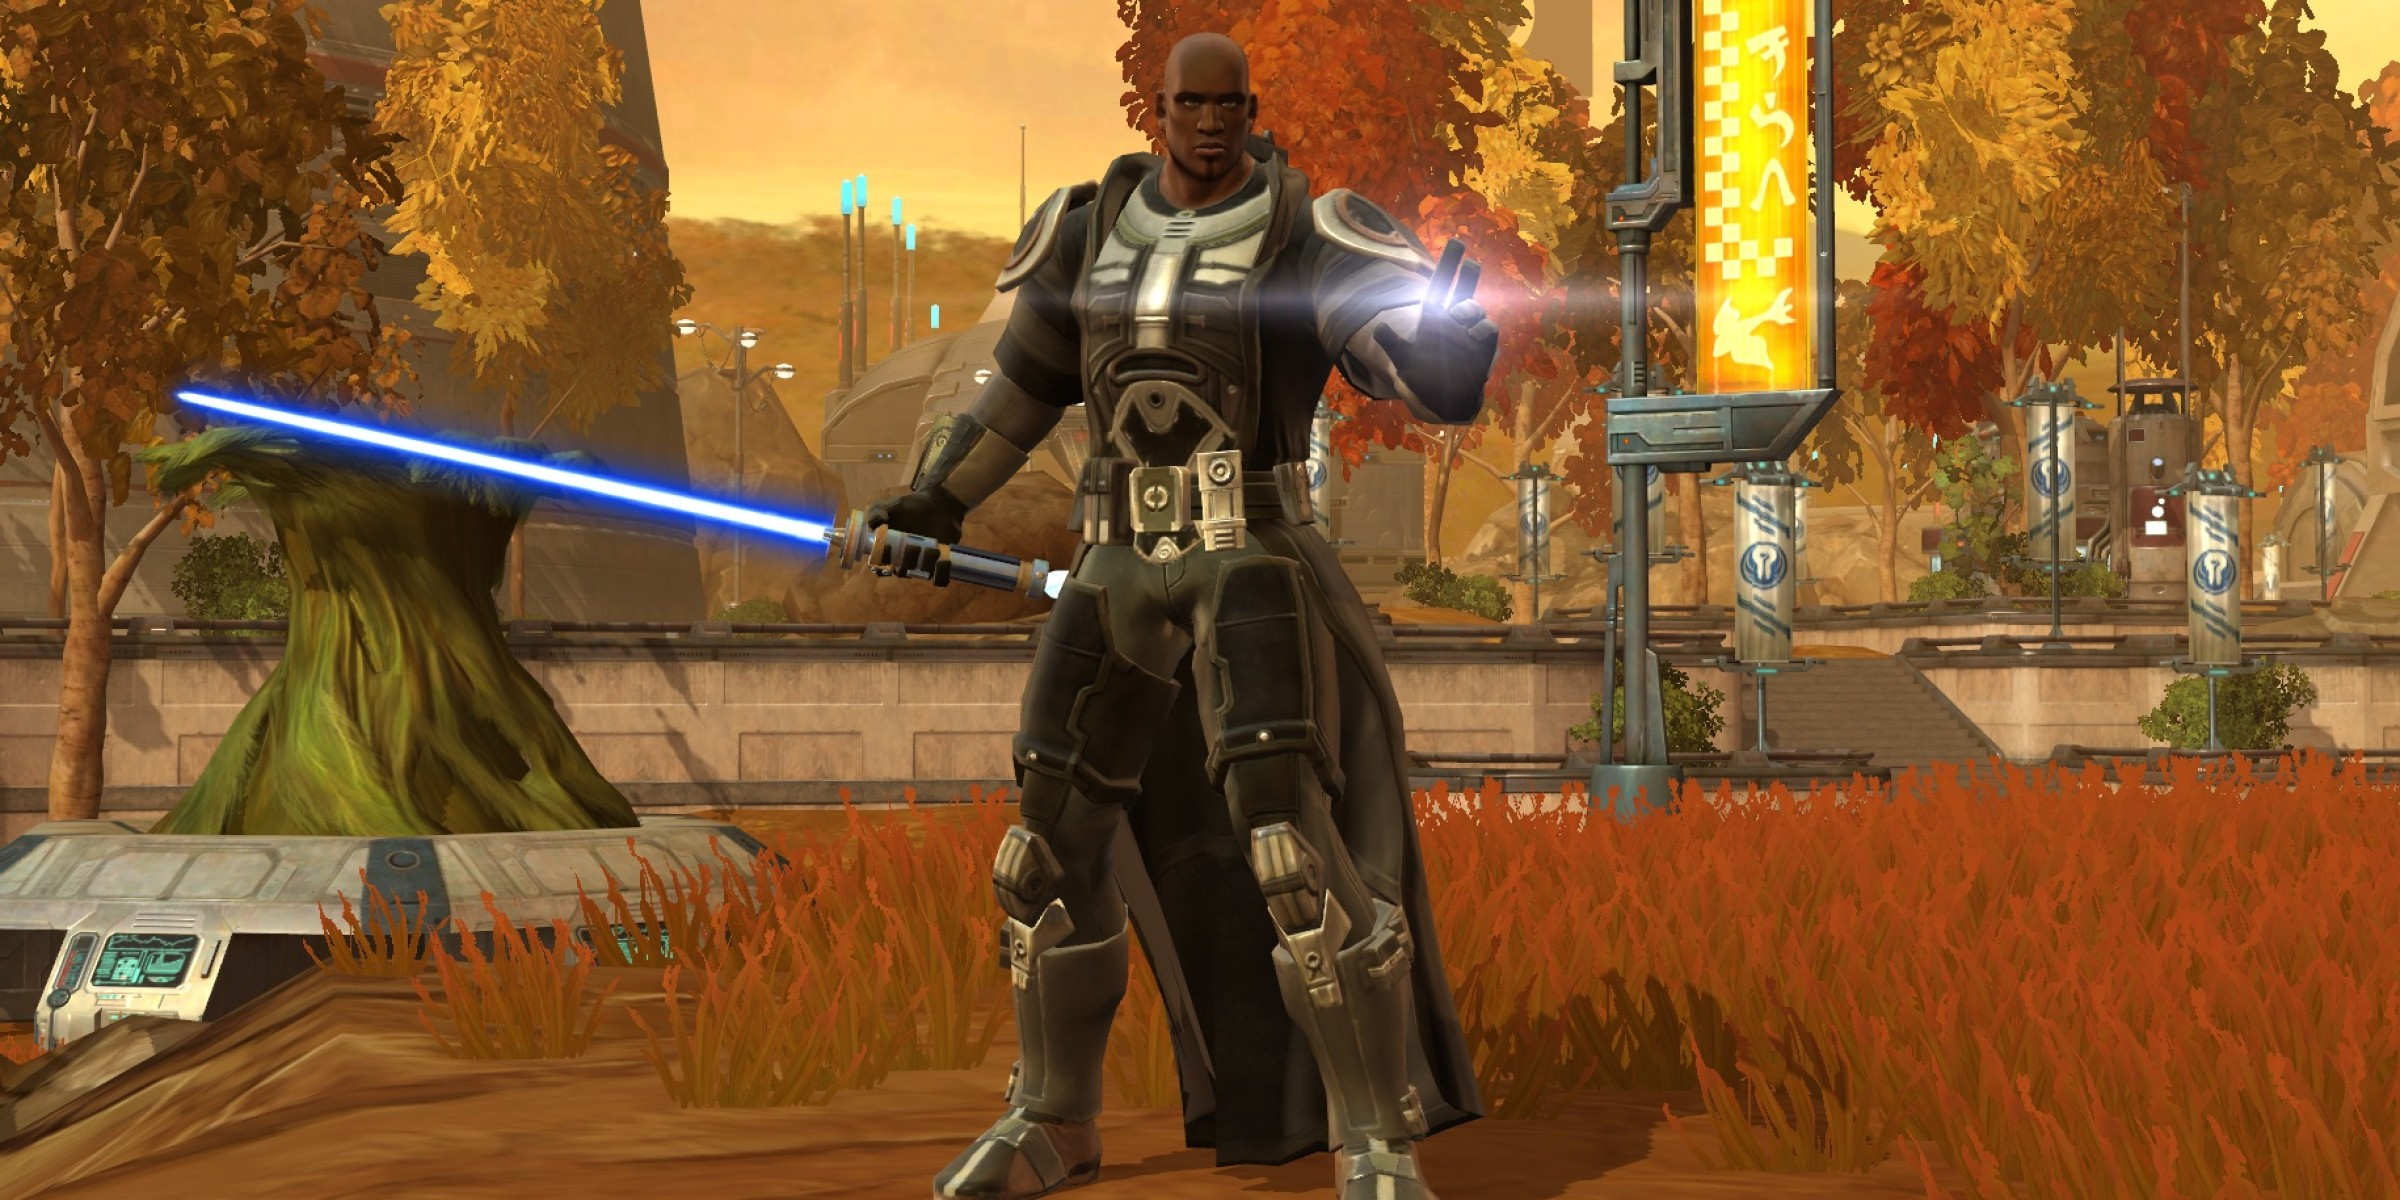 Star Wars: The Old Republic MMO Is Now Available To Play For Free Through Steam